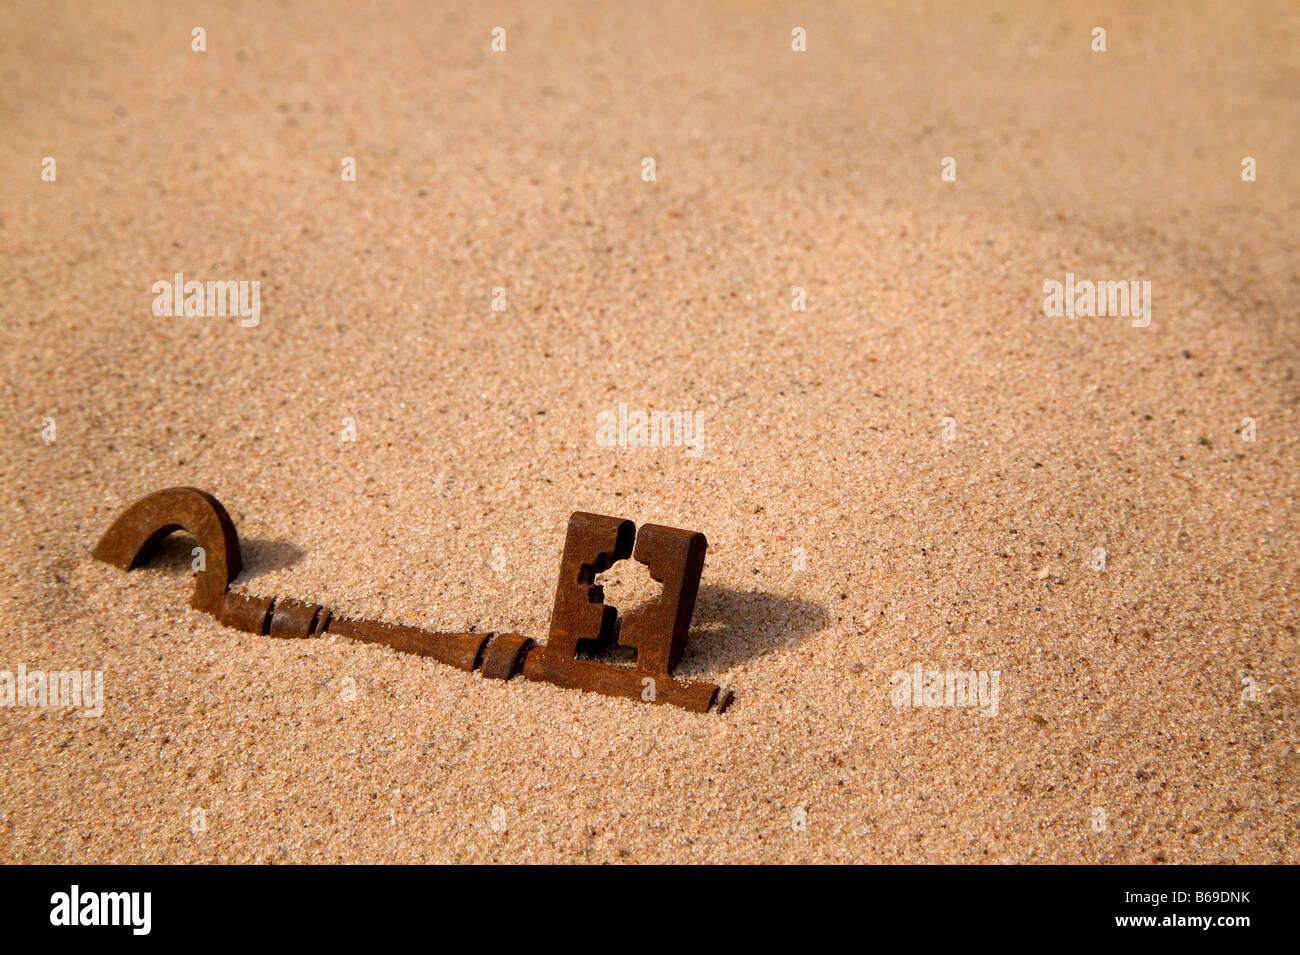 A rusty old key buried in the sand - Stock Image